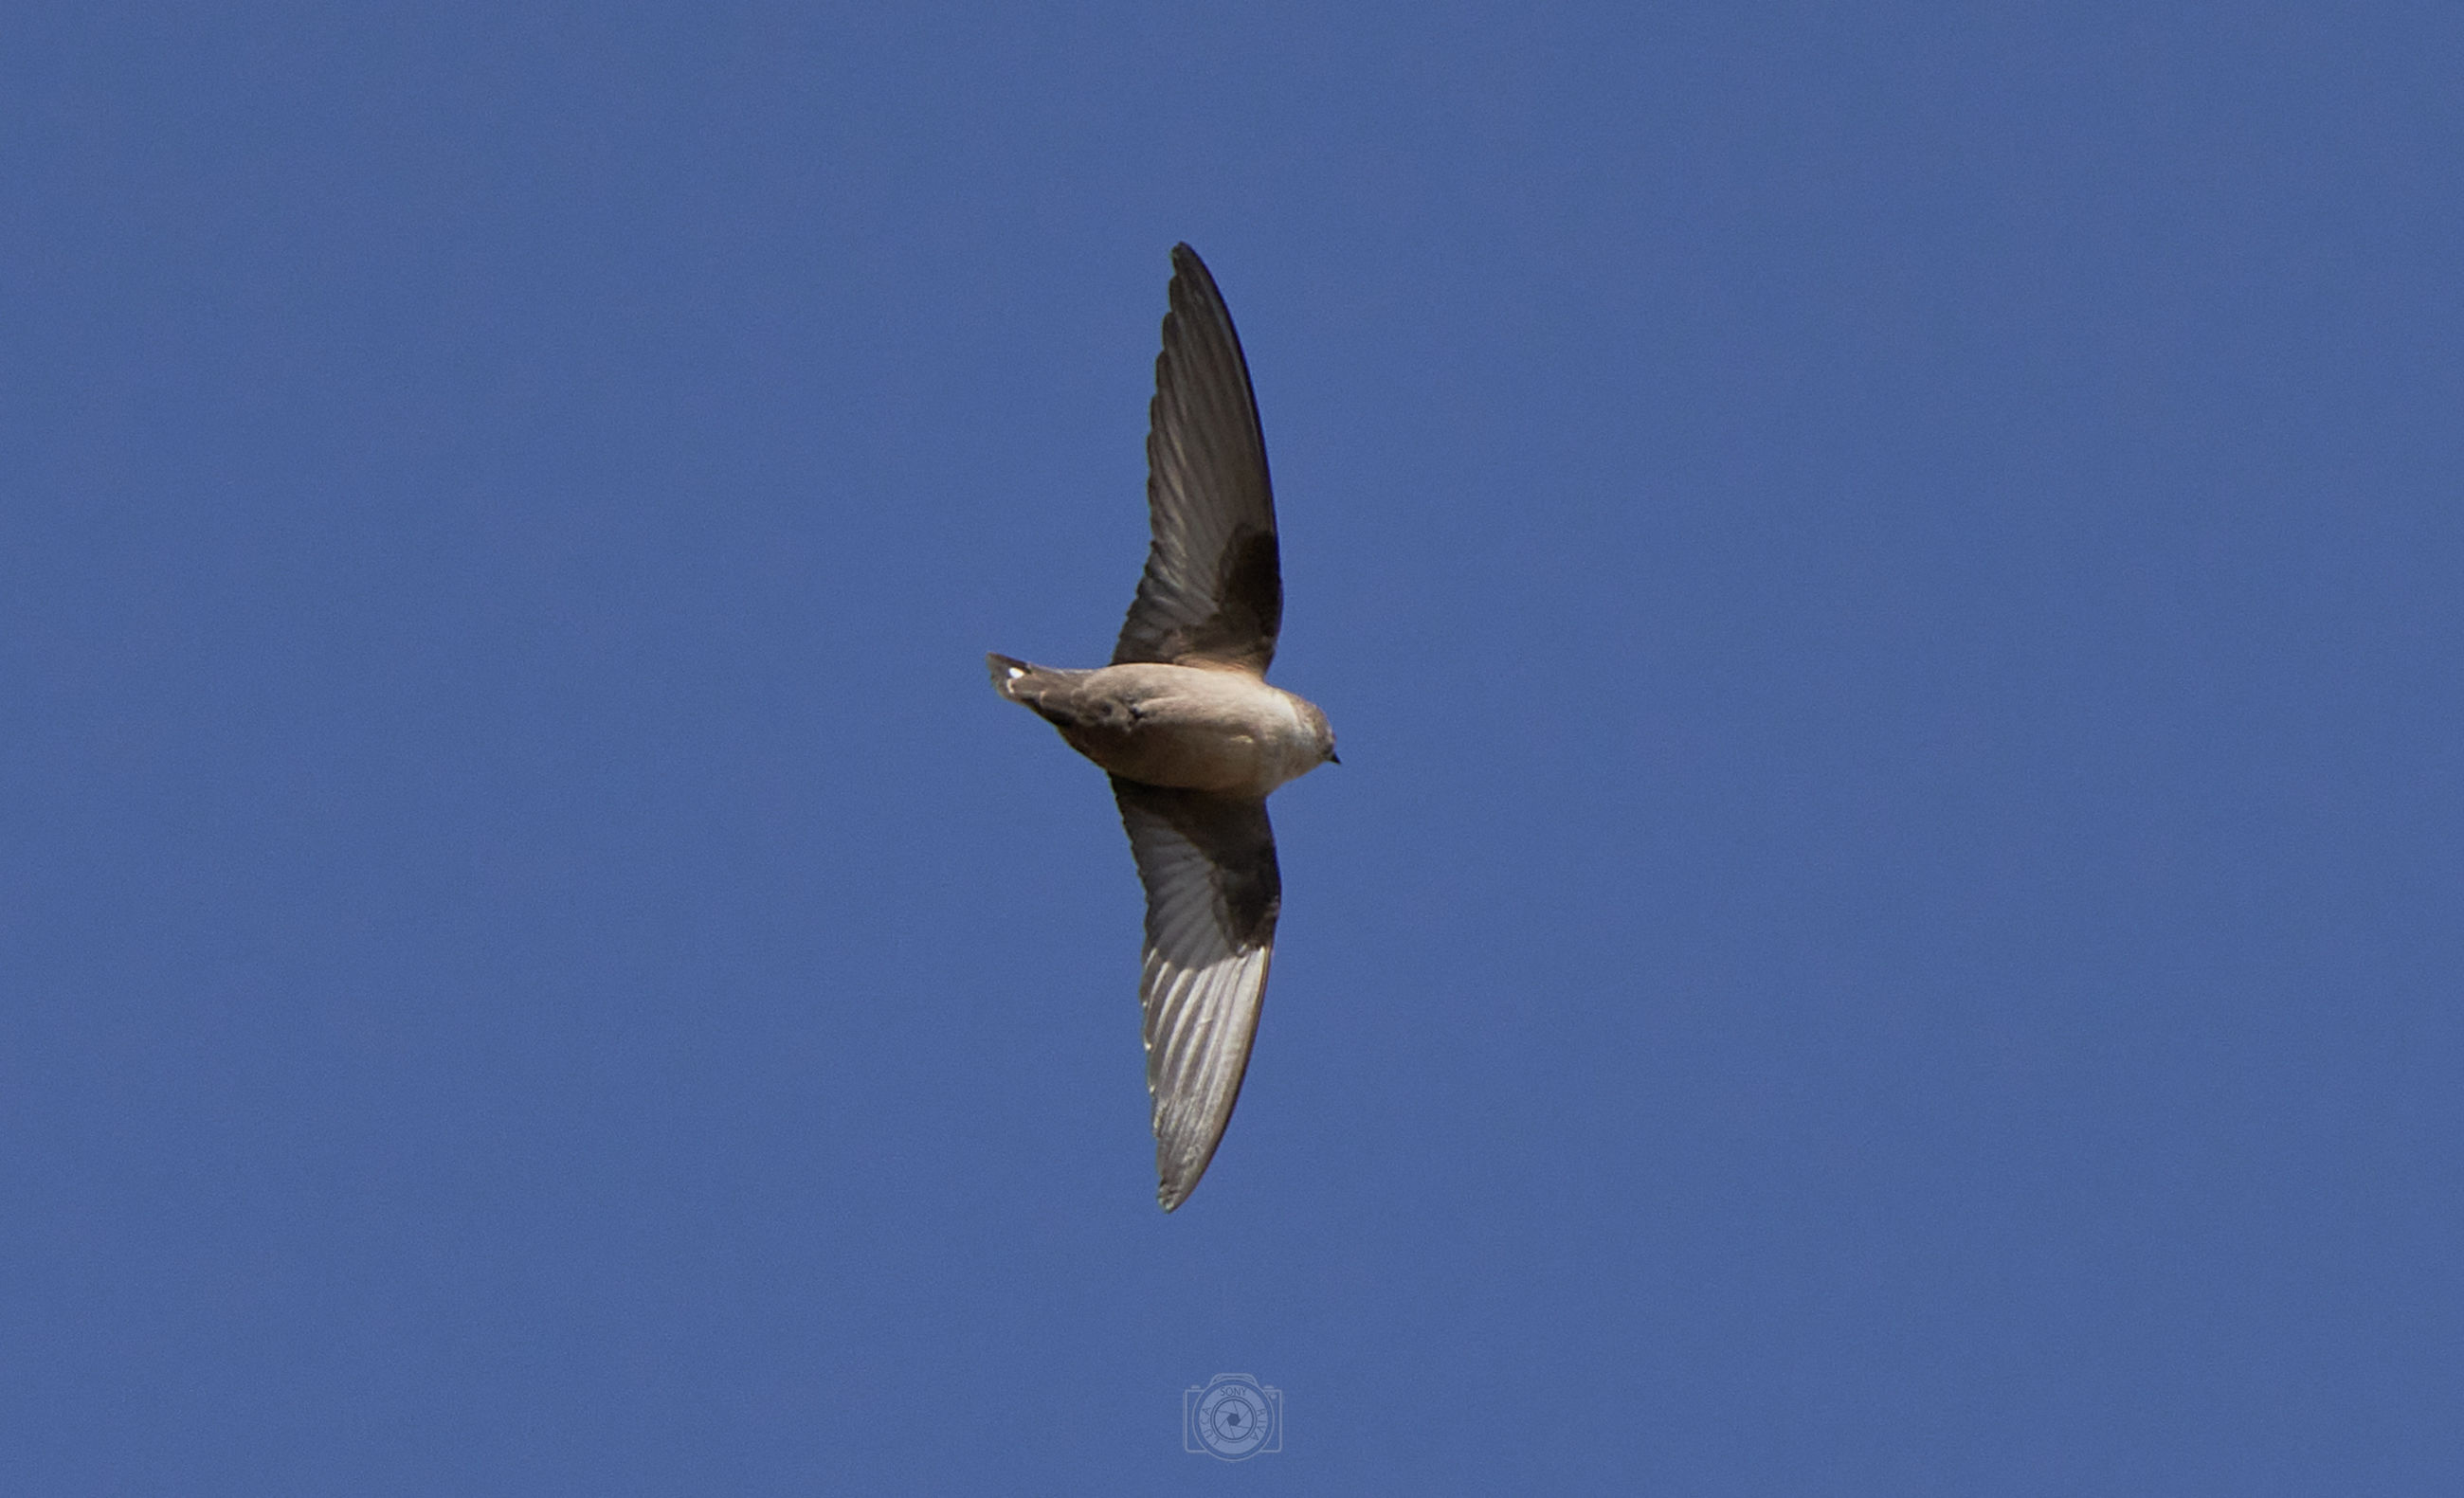 flying, animal, animal themes, bird, animal wildlife, wildlife, one animal, sky, blue, spread wings, animal body part, mid-air, clear sky, no people, nature, wing, low angle view, motion, seabird, bird of prey, outdoors, copy space, day, sunny, animal wing